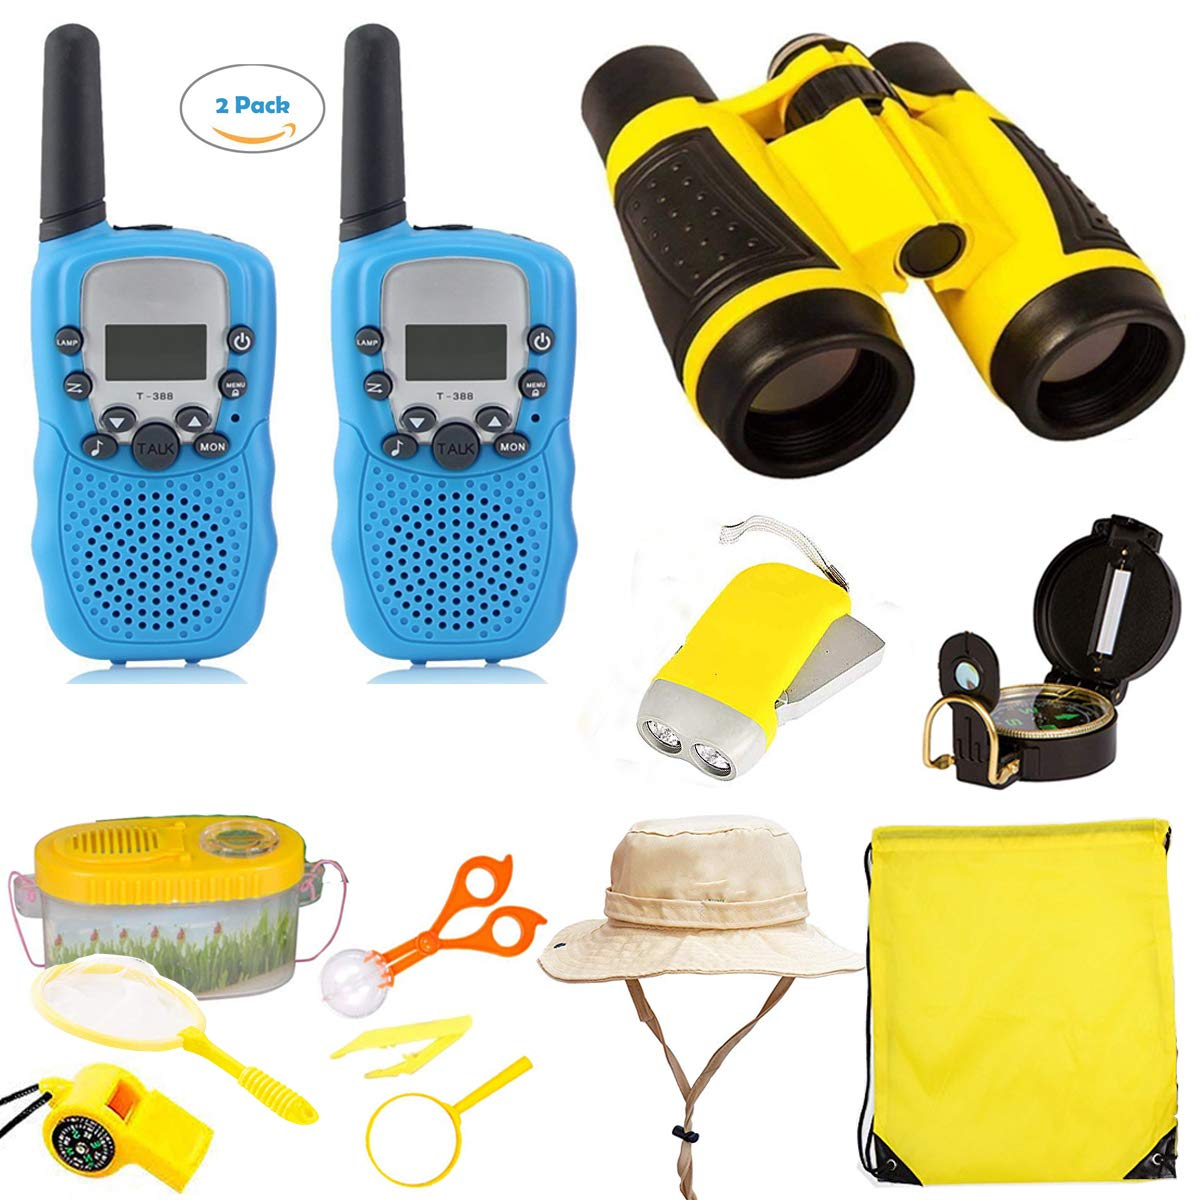 Woltechz Outdoor Toy Explorer Kit for Kids, 2packs Walkie Talkies with 3KM Long Rang 22 Channels 2 Way Radio/ Binoculars for Kids/Flashlight/ Compass and Adventure kit for Boys or Girls by Woltechz (Image #1)